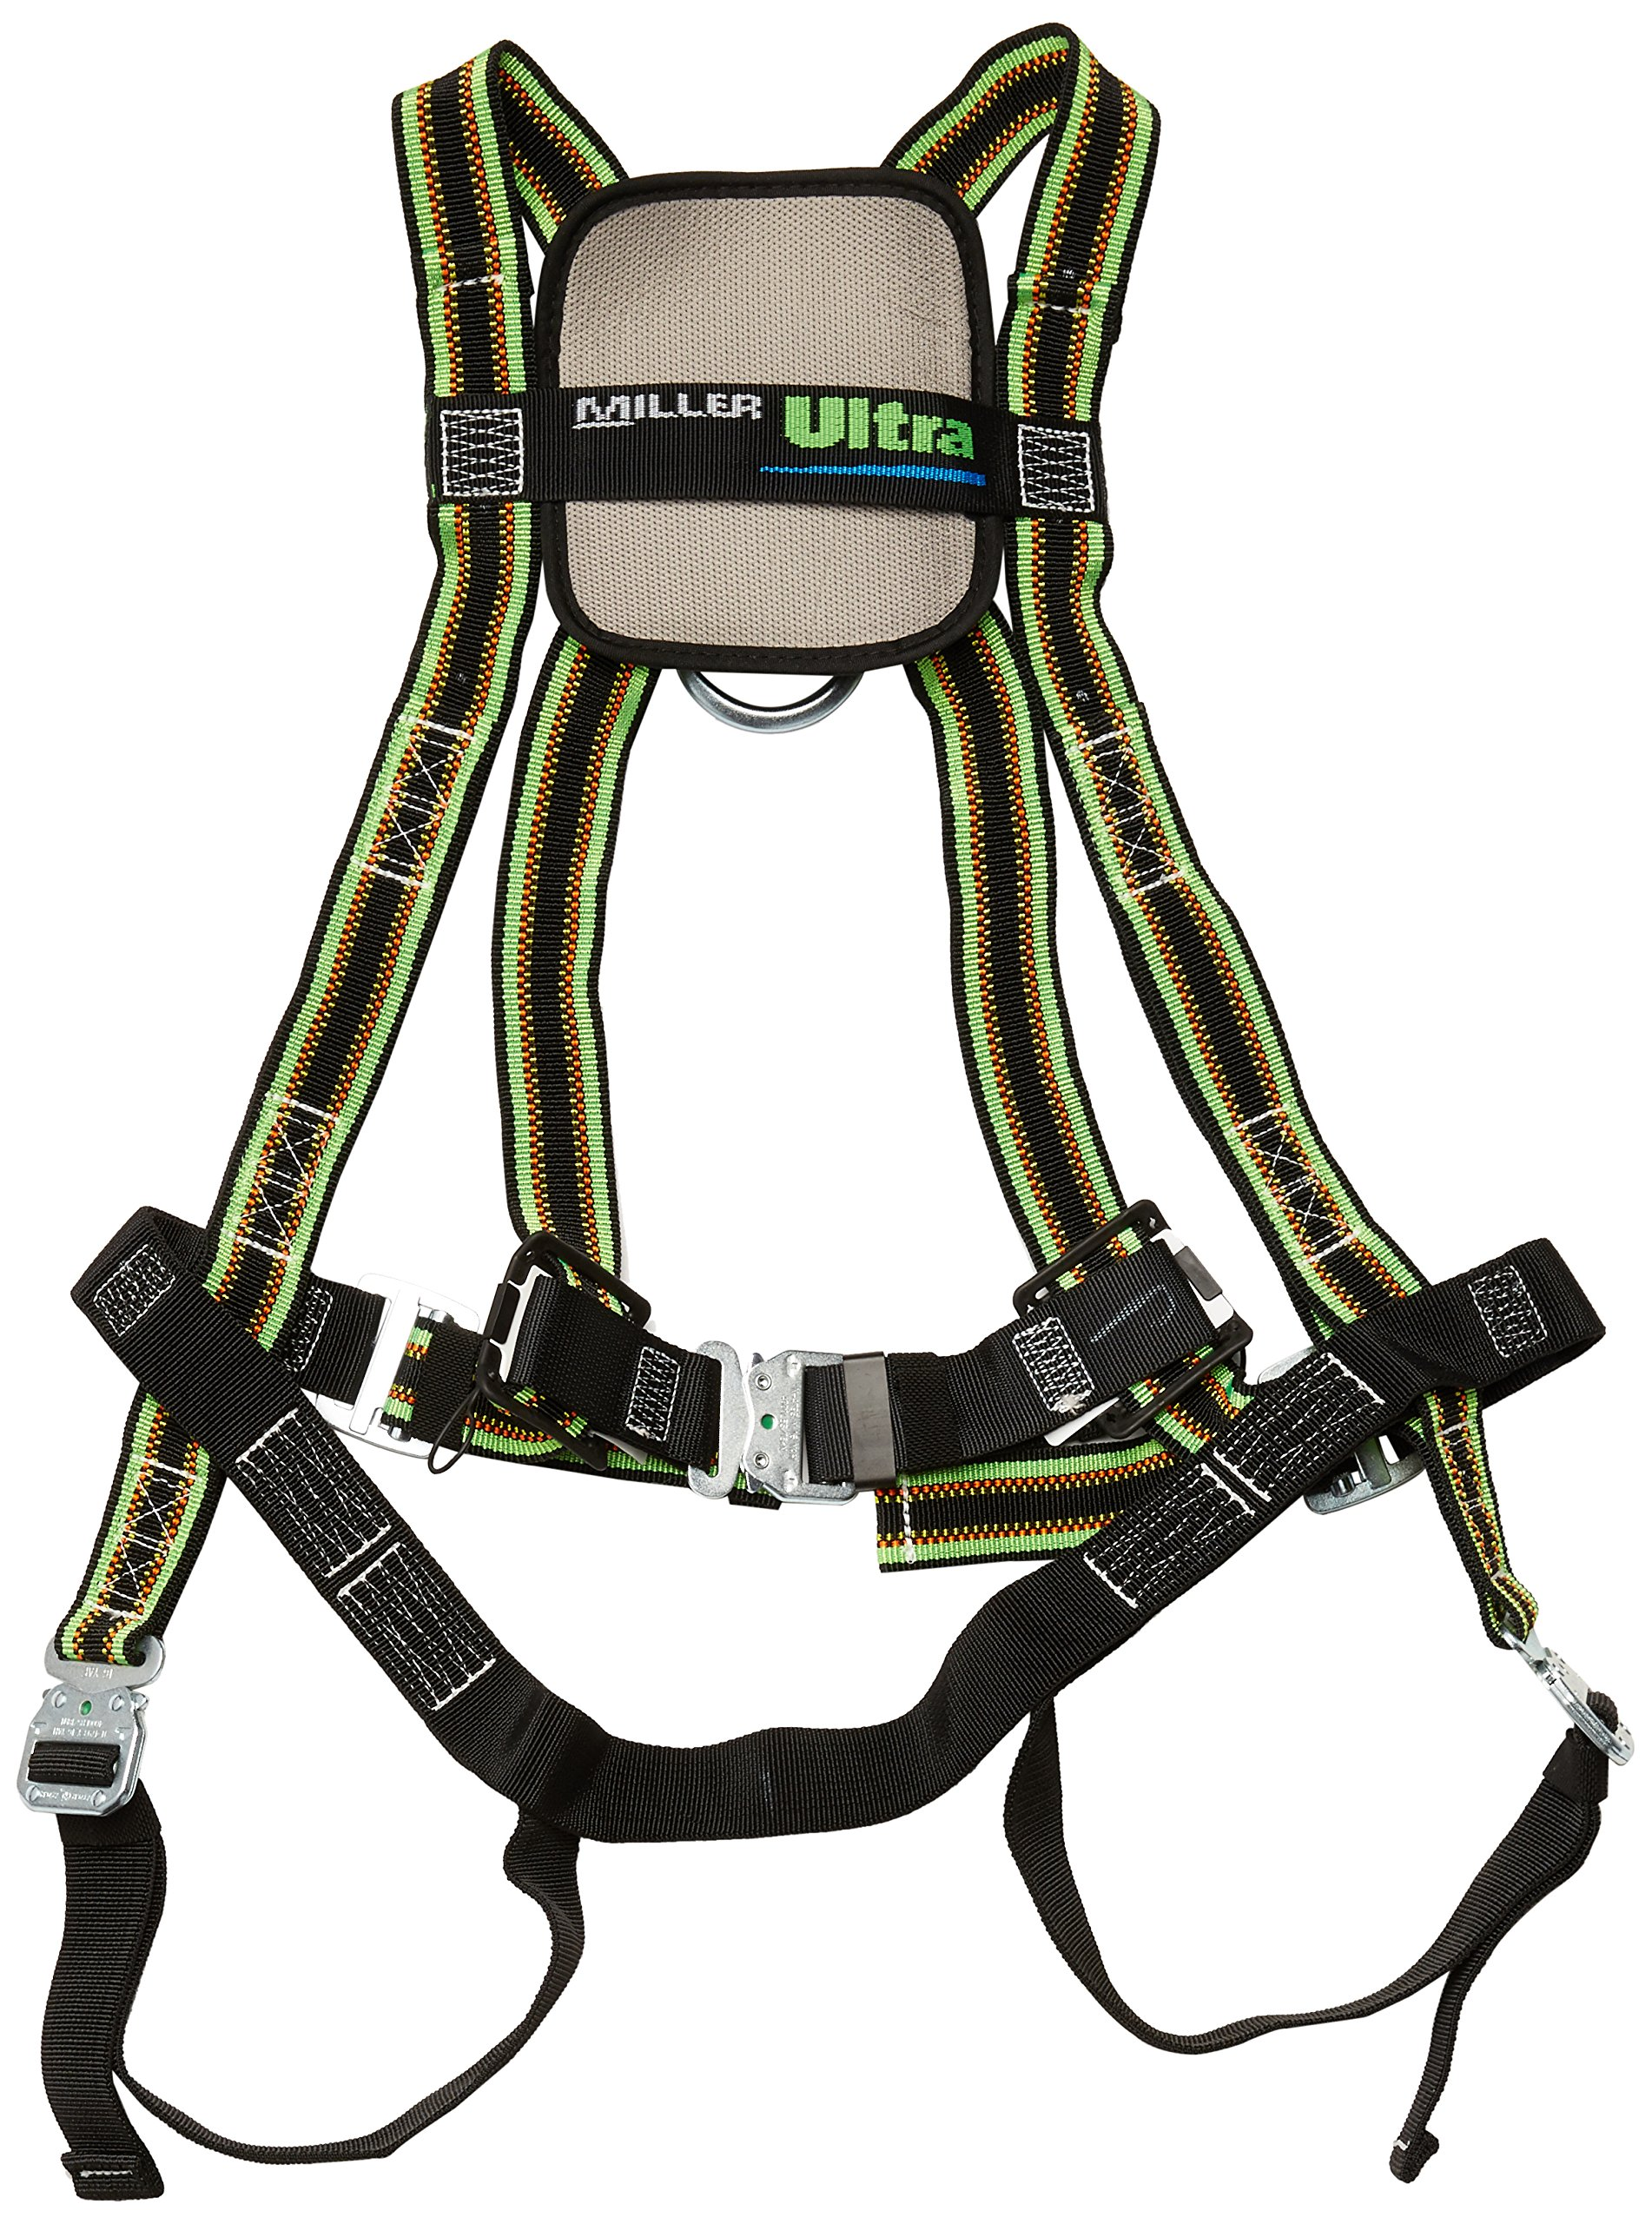 Miller DuraFlex Ultra Stretchable Full Body Safety Harness with Quick-Connect Buckles and Comfort-Touch Back D-Ring Pad, Universal Size-Large/XL, 400 lb. Capacity (E650QC/UGN)